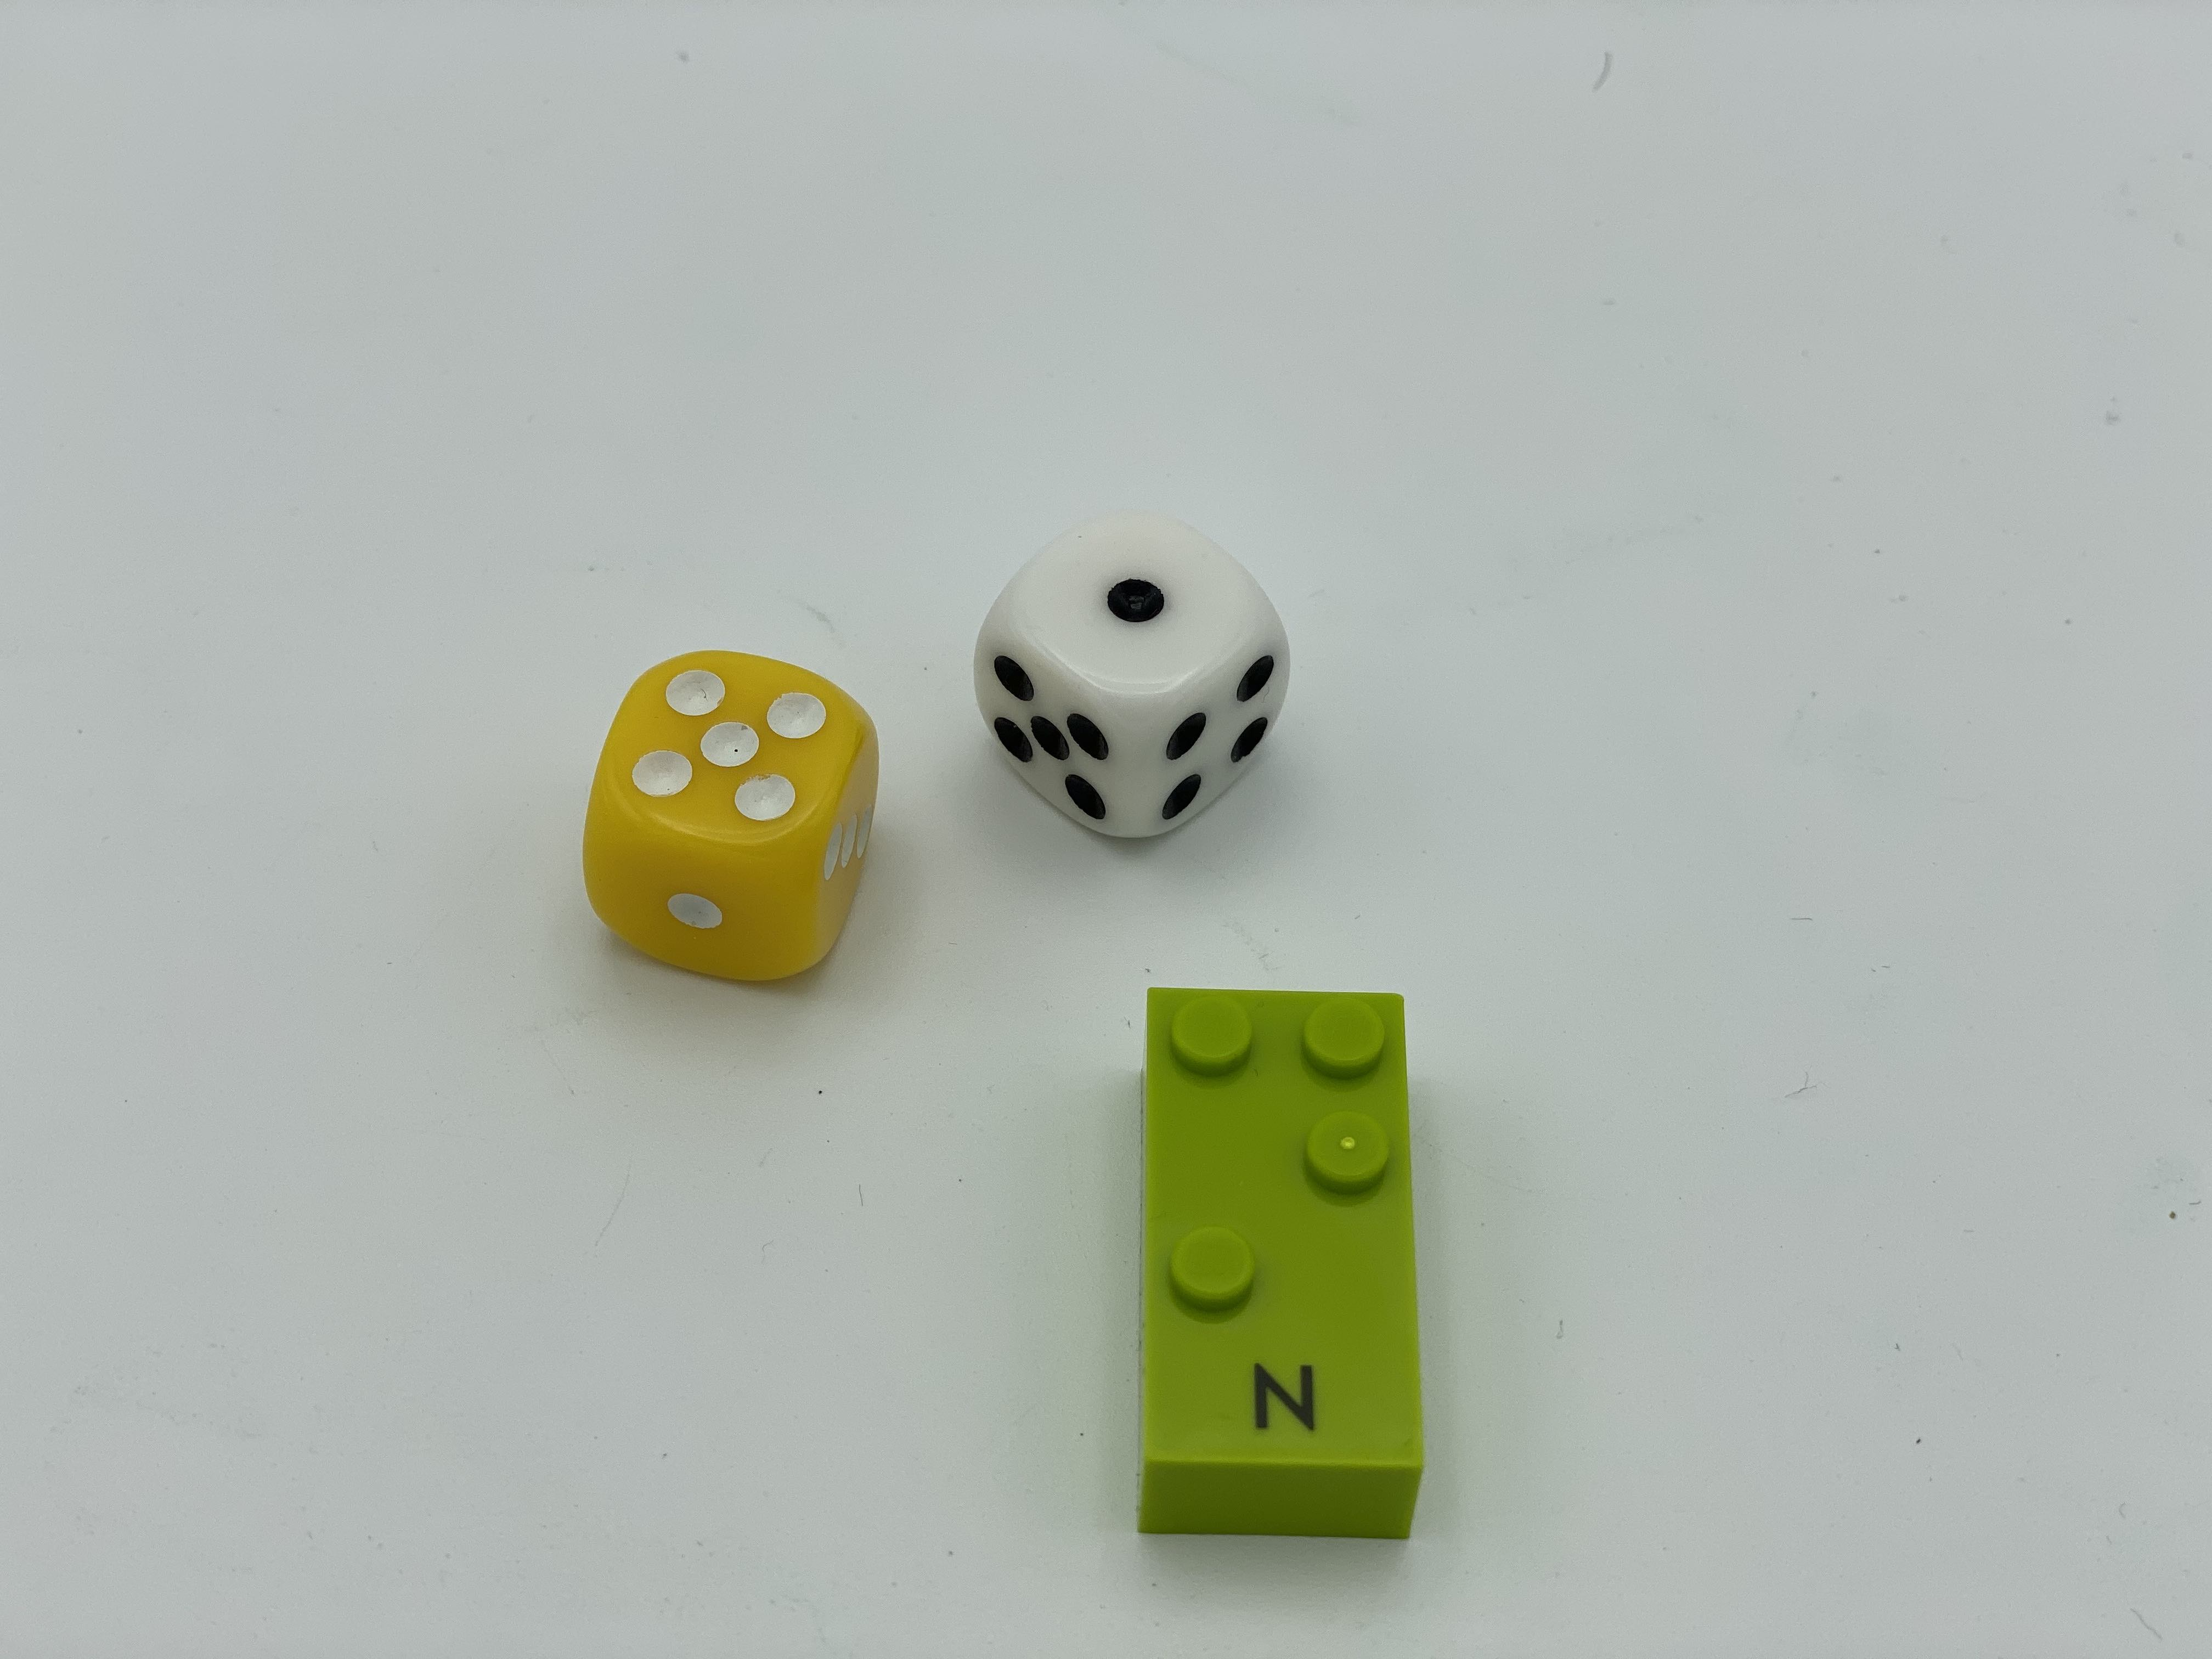 Dice roll: 5 and 1, letter brick N